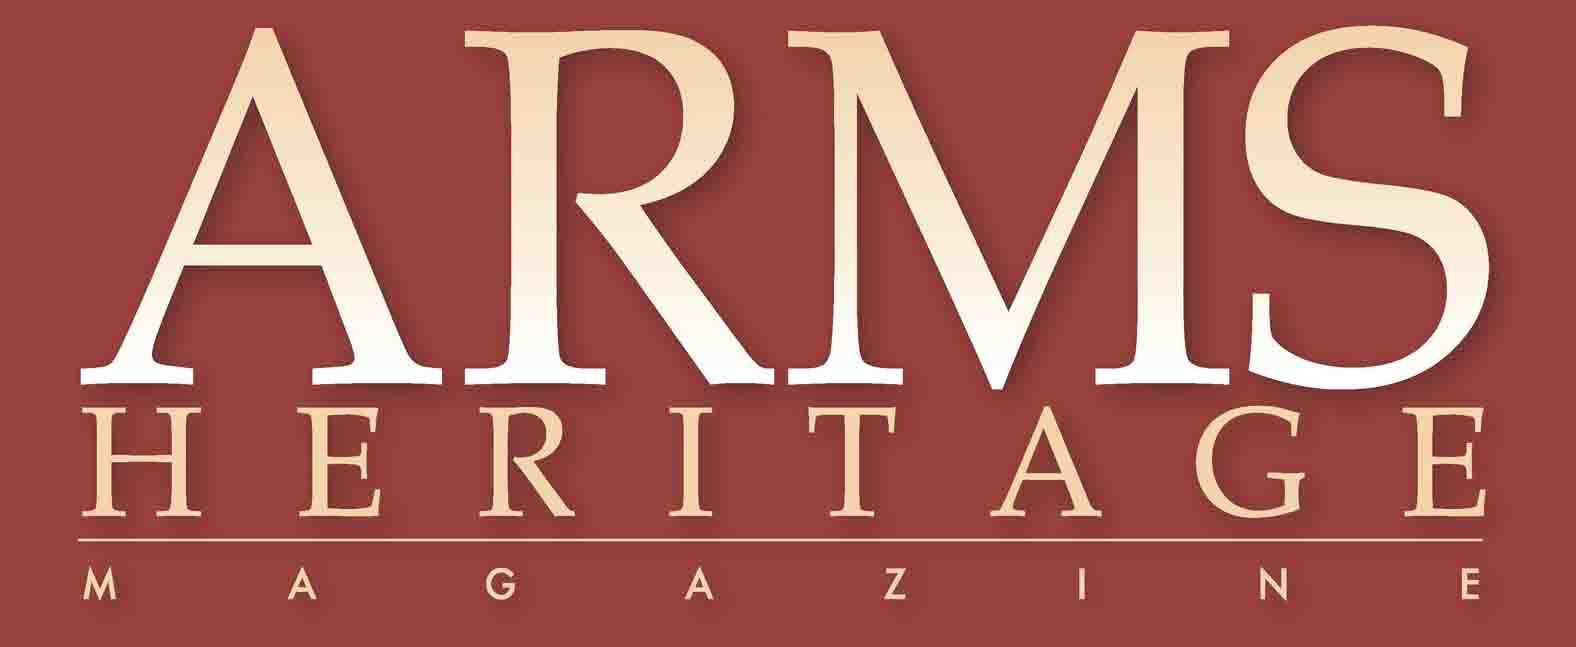 Arms Heritage Magazine - Volume 1, All Six Issues